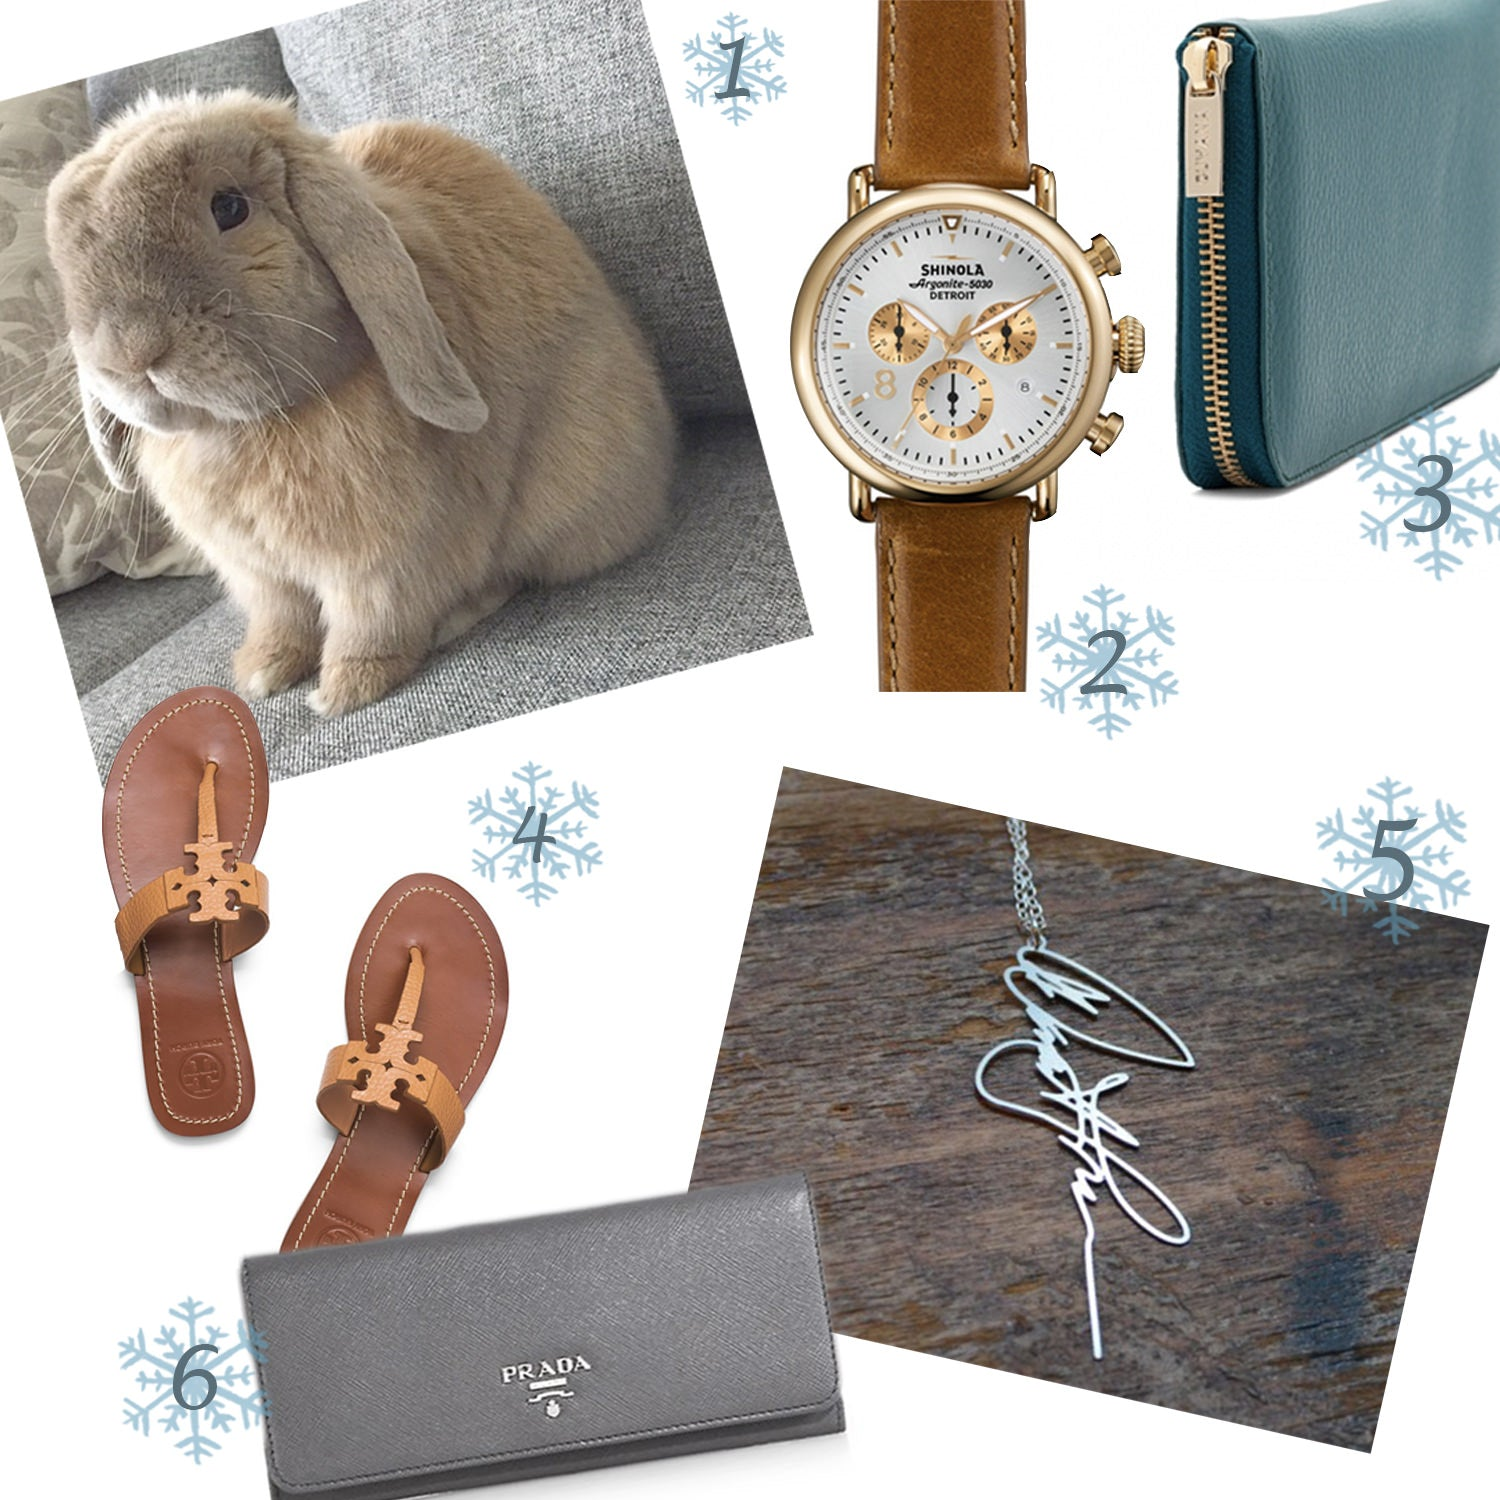 bunny, shinola watch, cuyana wallet, tory burch, tory burch sandals, brevity signature necklace, custom signature necklace, prada, prada wallet, gray prada wallet, gift ideas, gift guide, holiday gift guide 2014, best gift ideas for women